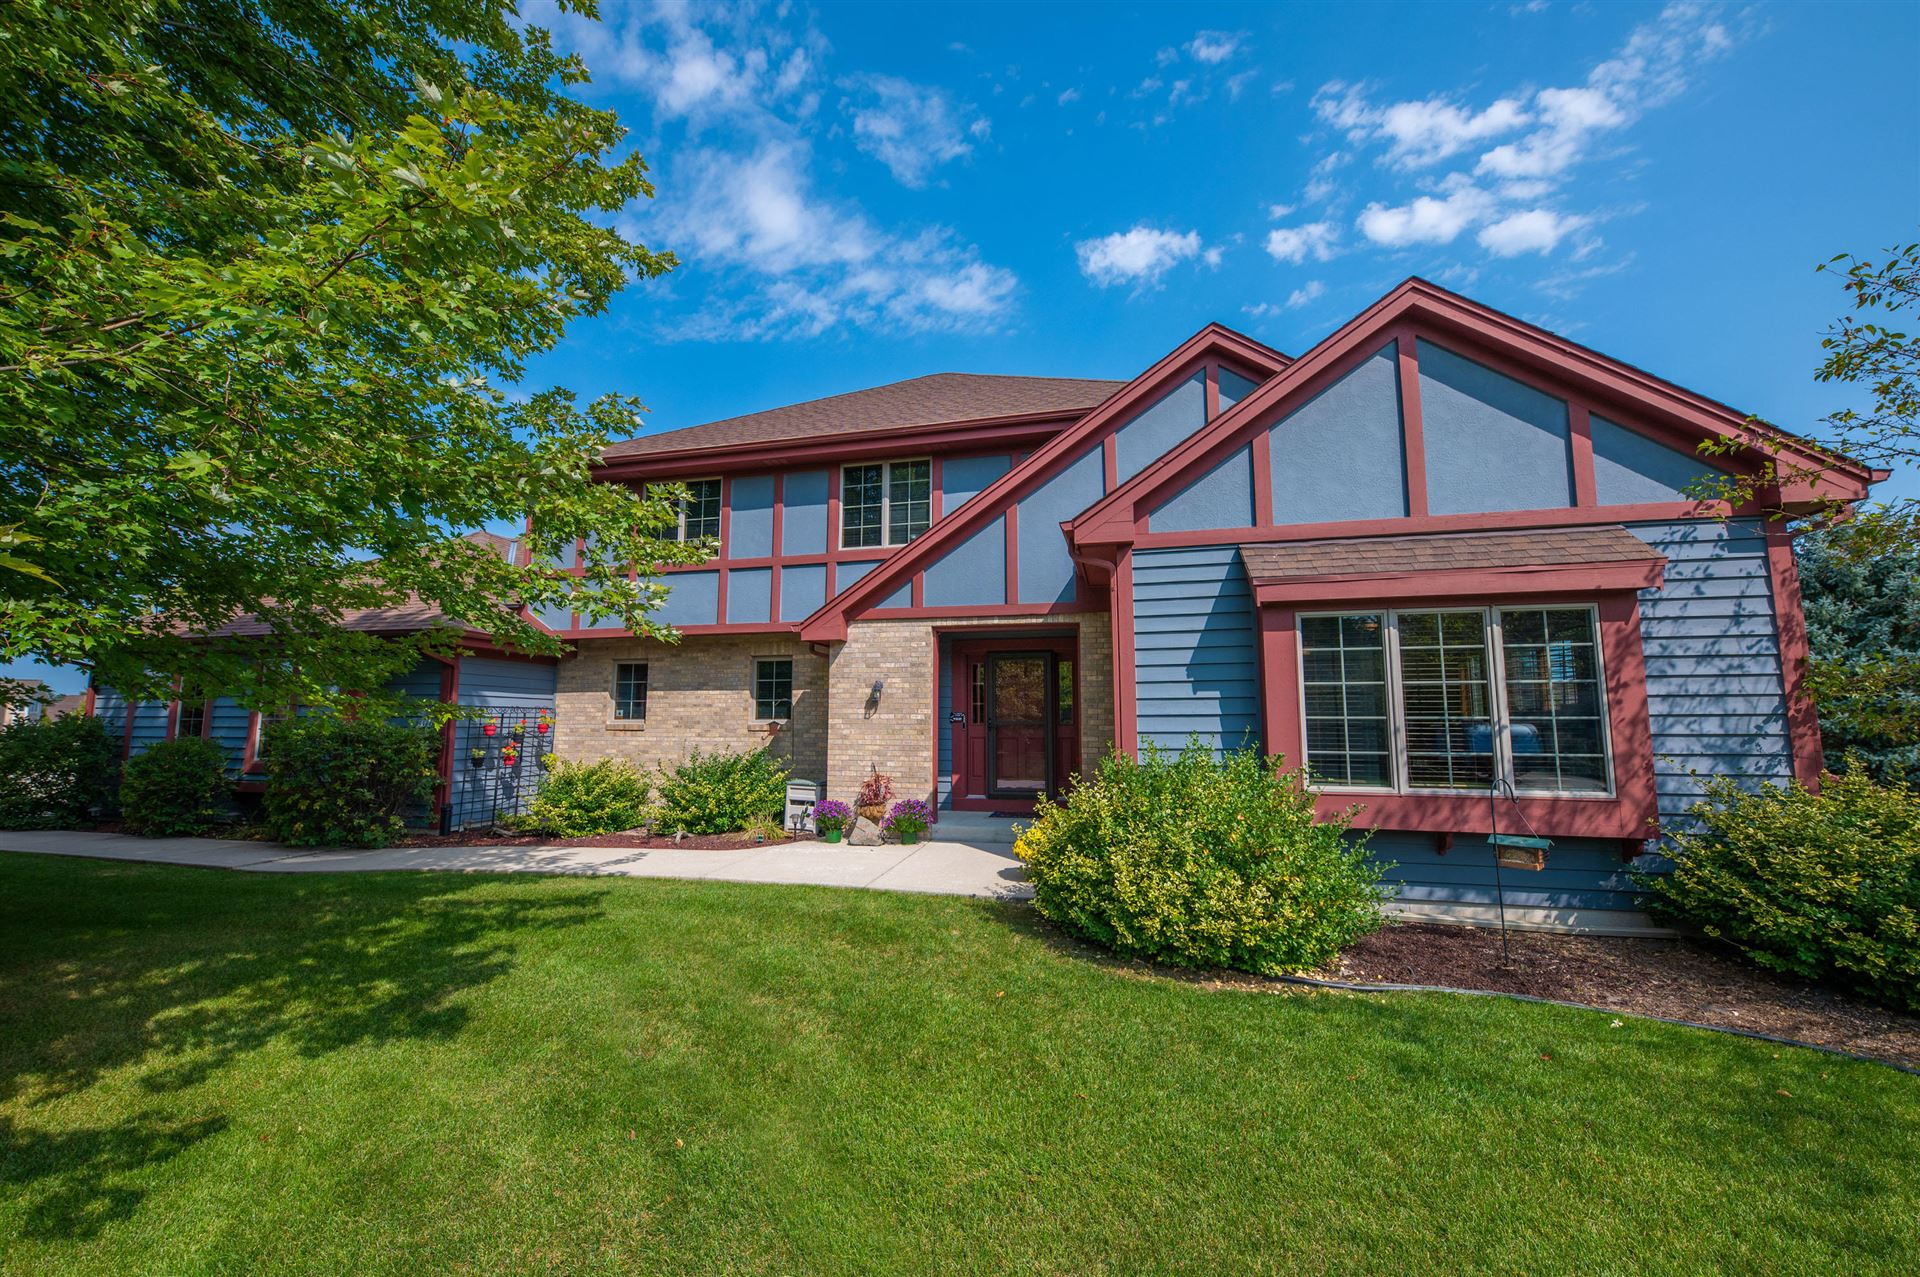 9440 Oak Ct, Brown Deer, WI 53223 - #: 1711171